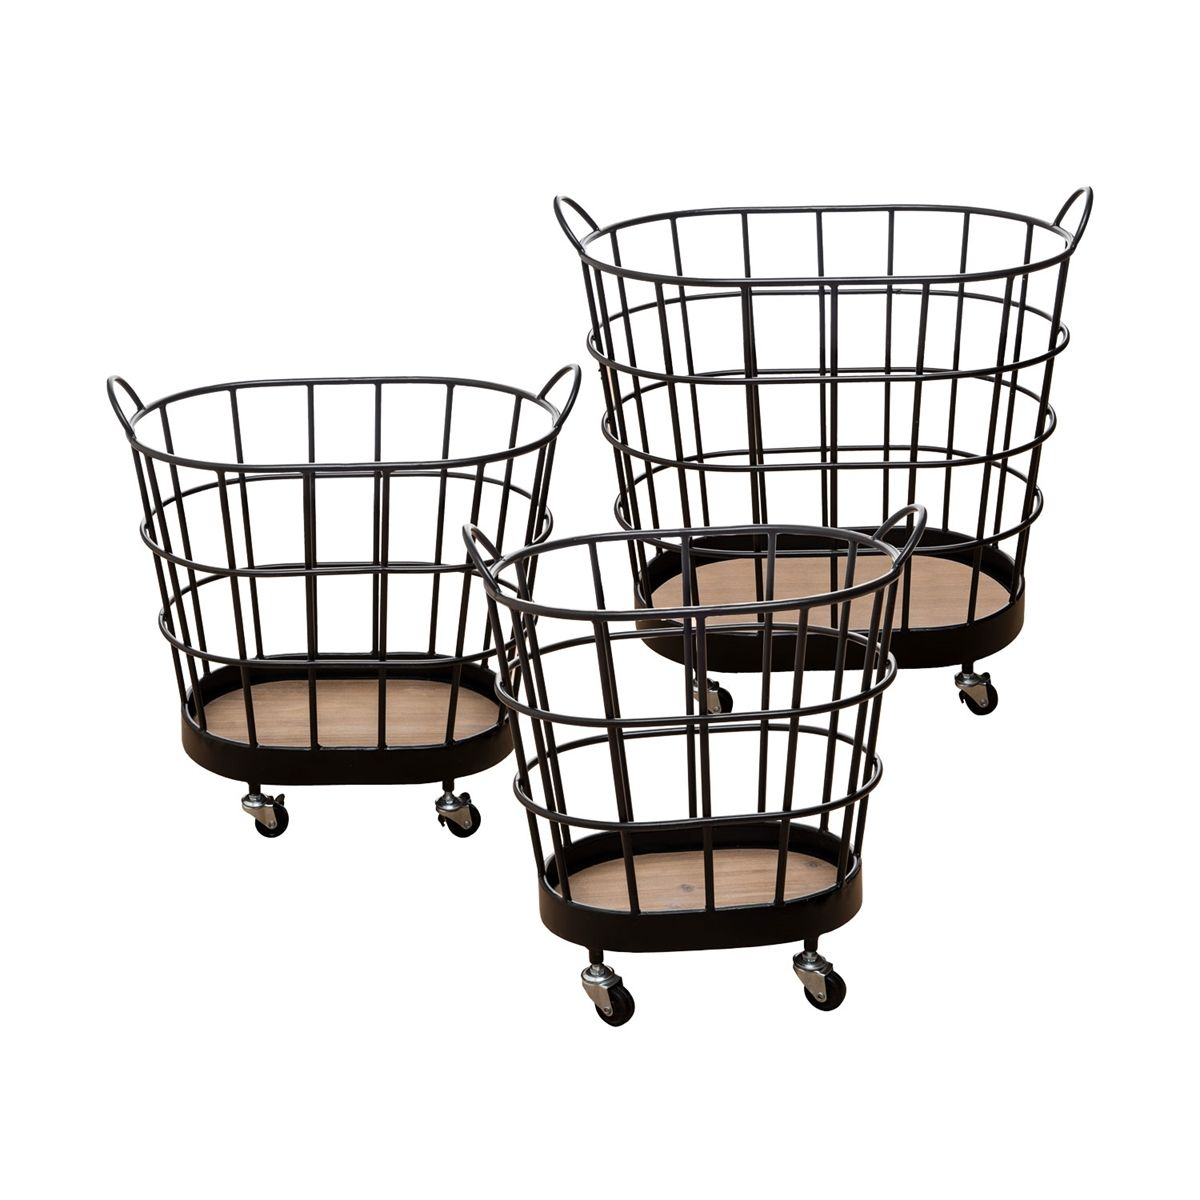 Foreside Home Garden Rolling Wire Baskets On Wheels Set Of 3 In 2020 Wire Baskets Basket Metal Baskets